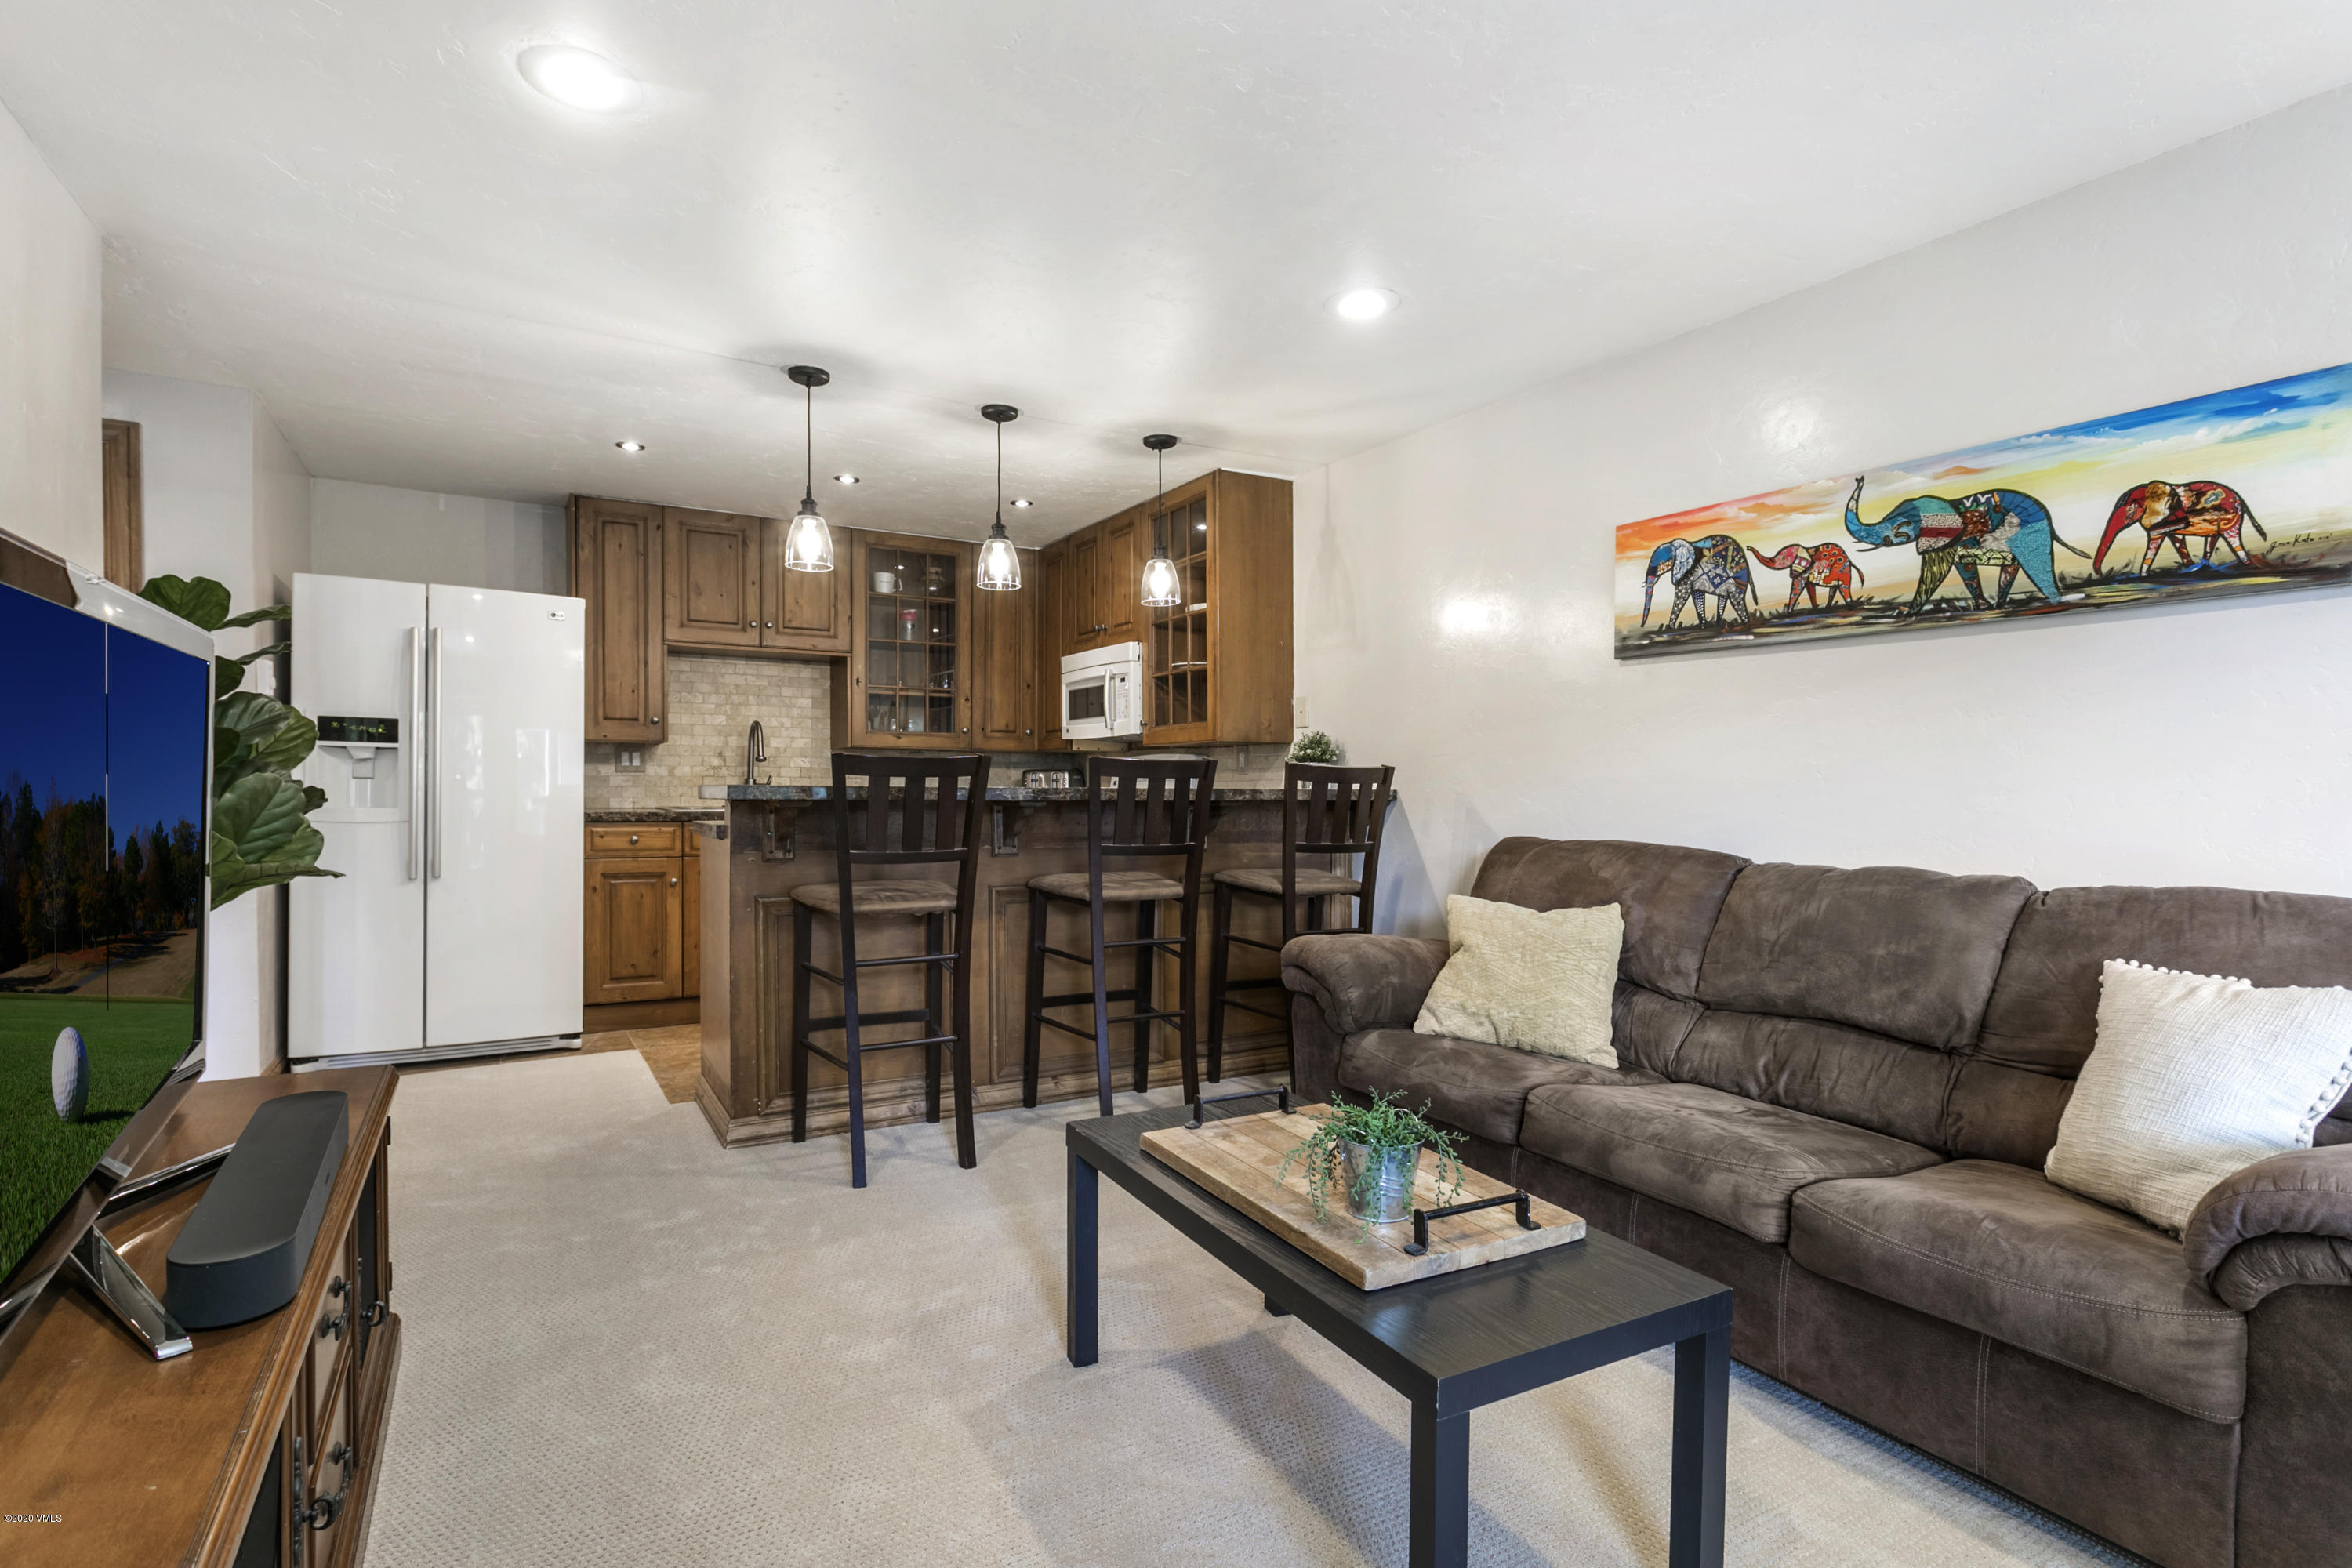 Outstanding opportunity to own an remodeled condo in the central Vail Valley for an accessible price. Conveniently located in Avon, this residence features an open floor plan and nice finishes. Enjoy the convenience of walking into town, Nottingham Lake and big views of Beaver Creek.